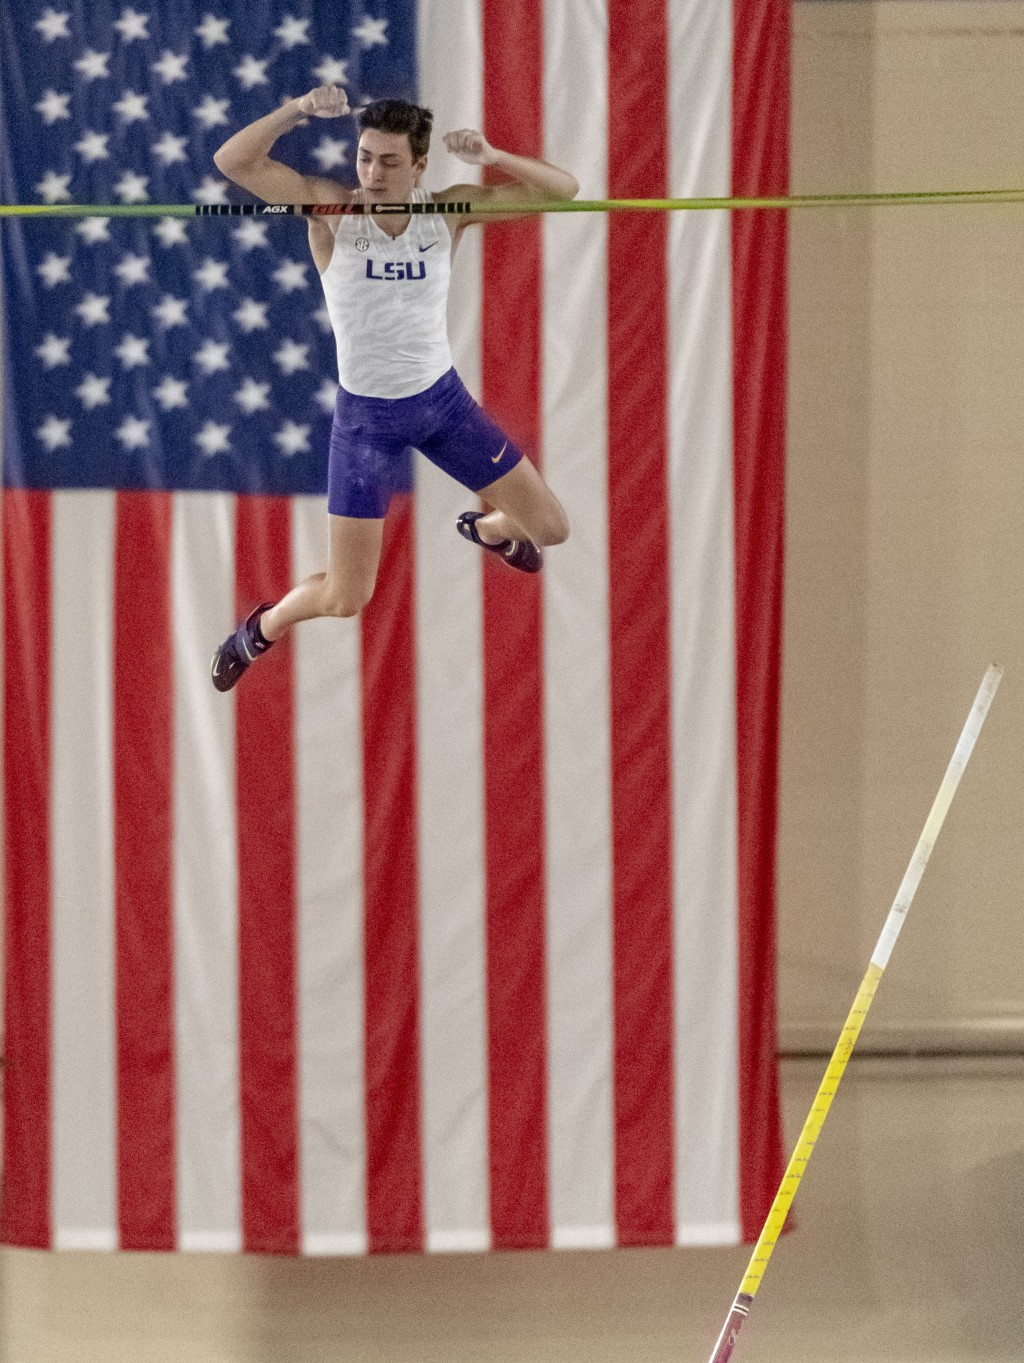 File-This March 8, 2019, file photo shows LSU's Mondo Duplantis competing in the men's pole vault during the NCAA Division I indoor track and field ch...